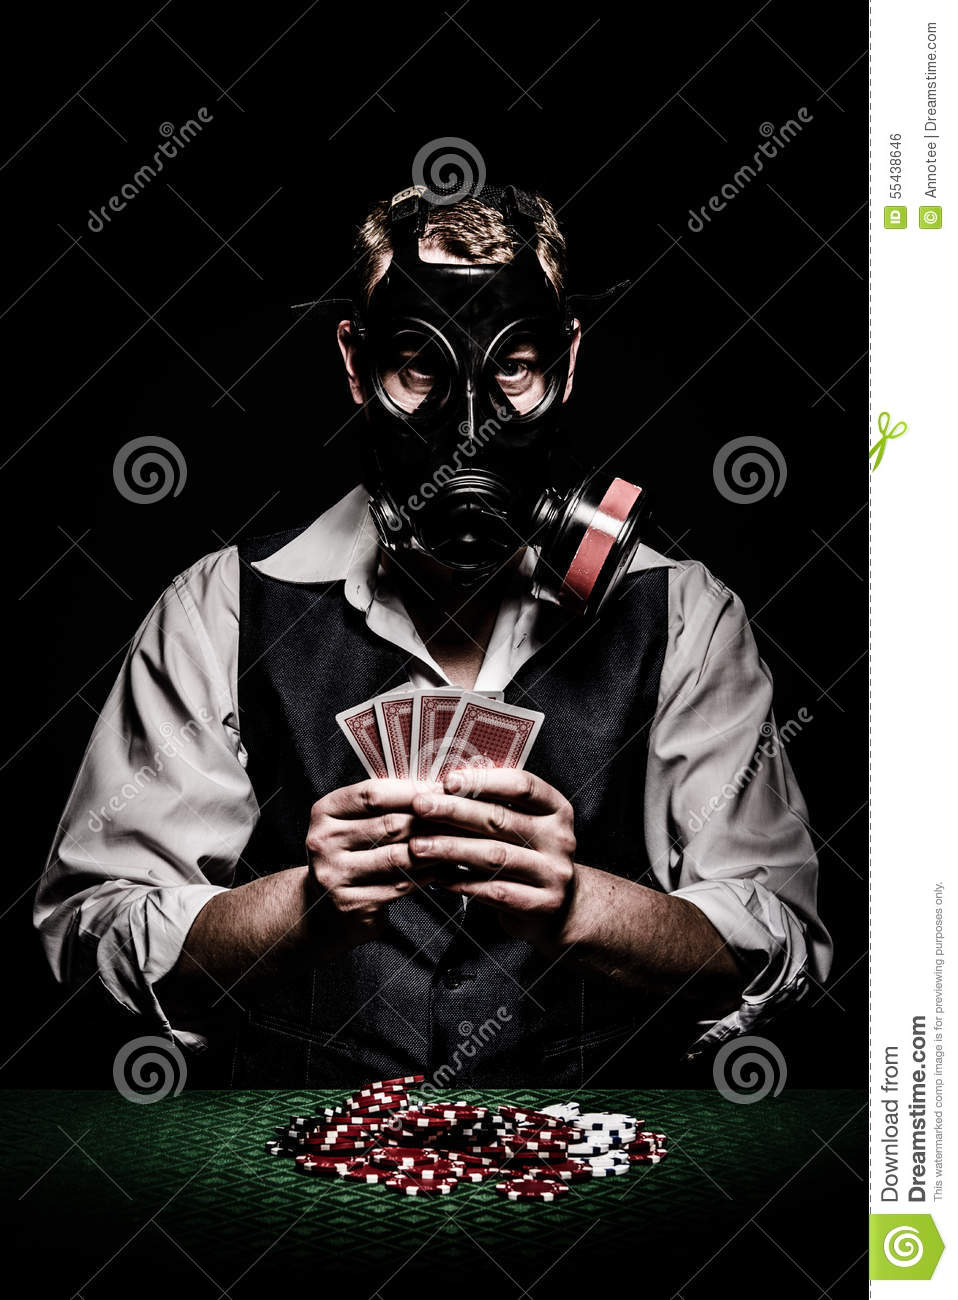 poker player with a gas mask on his head stock photo Funny Gambling Addiction Gambling Addiction Hotline